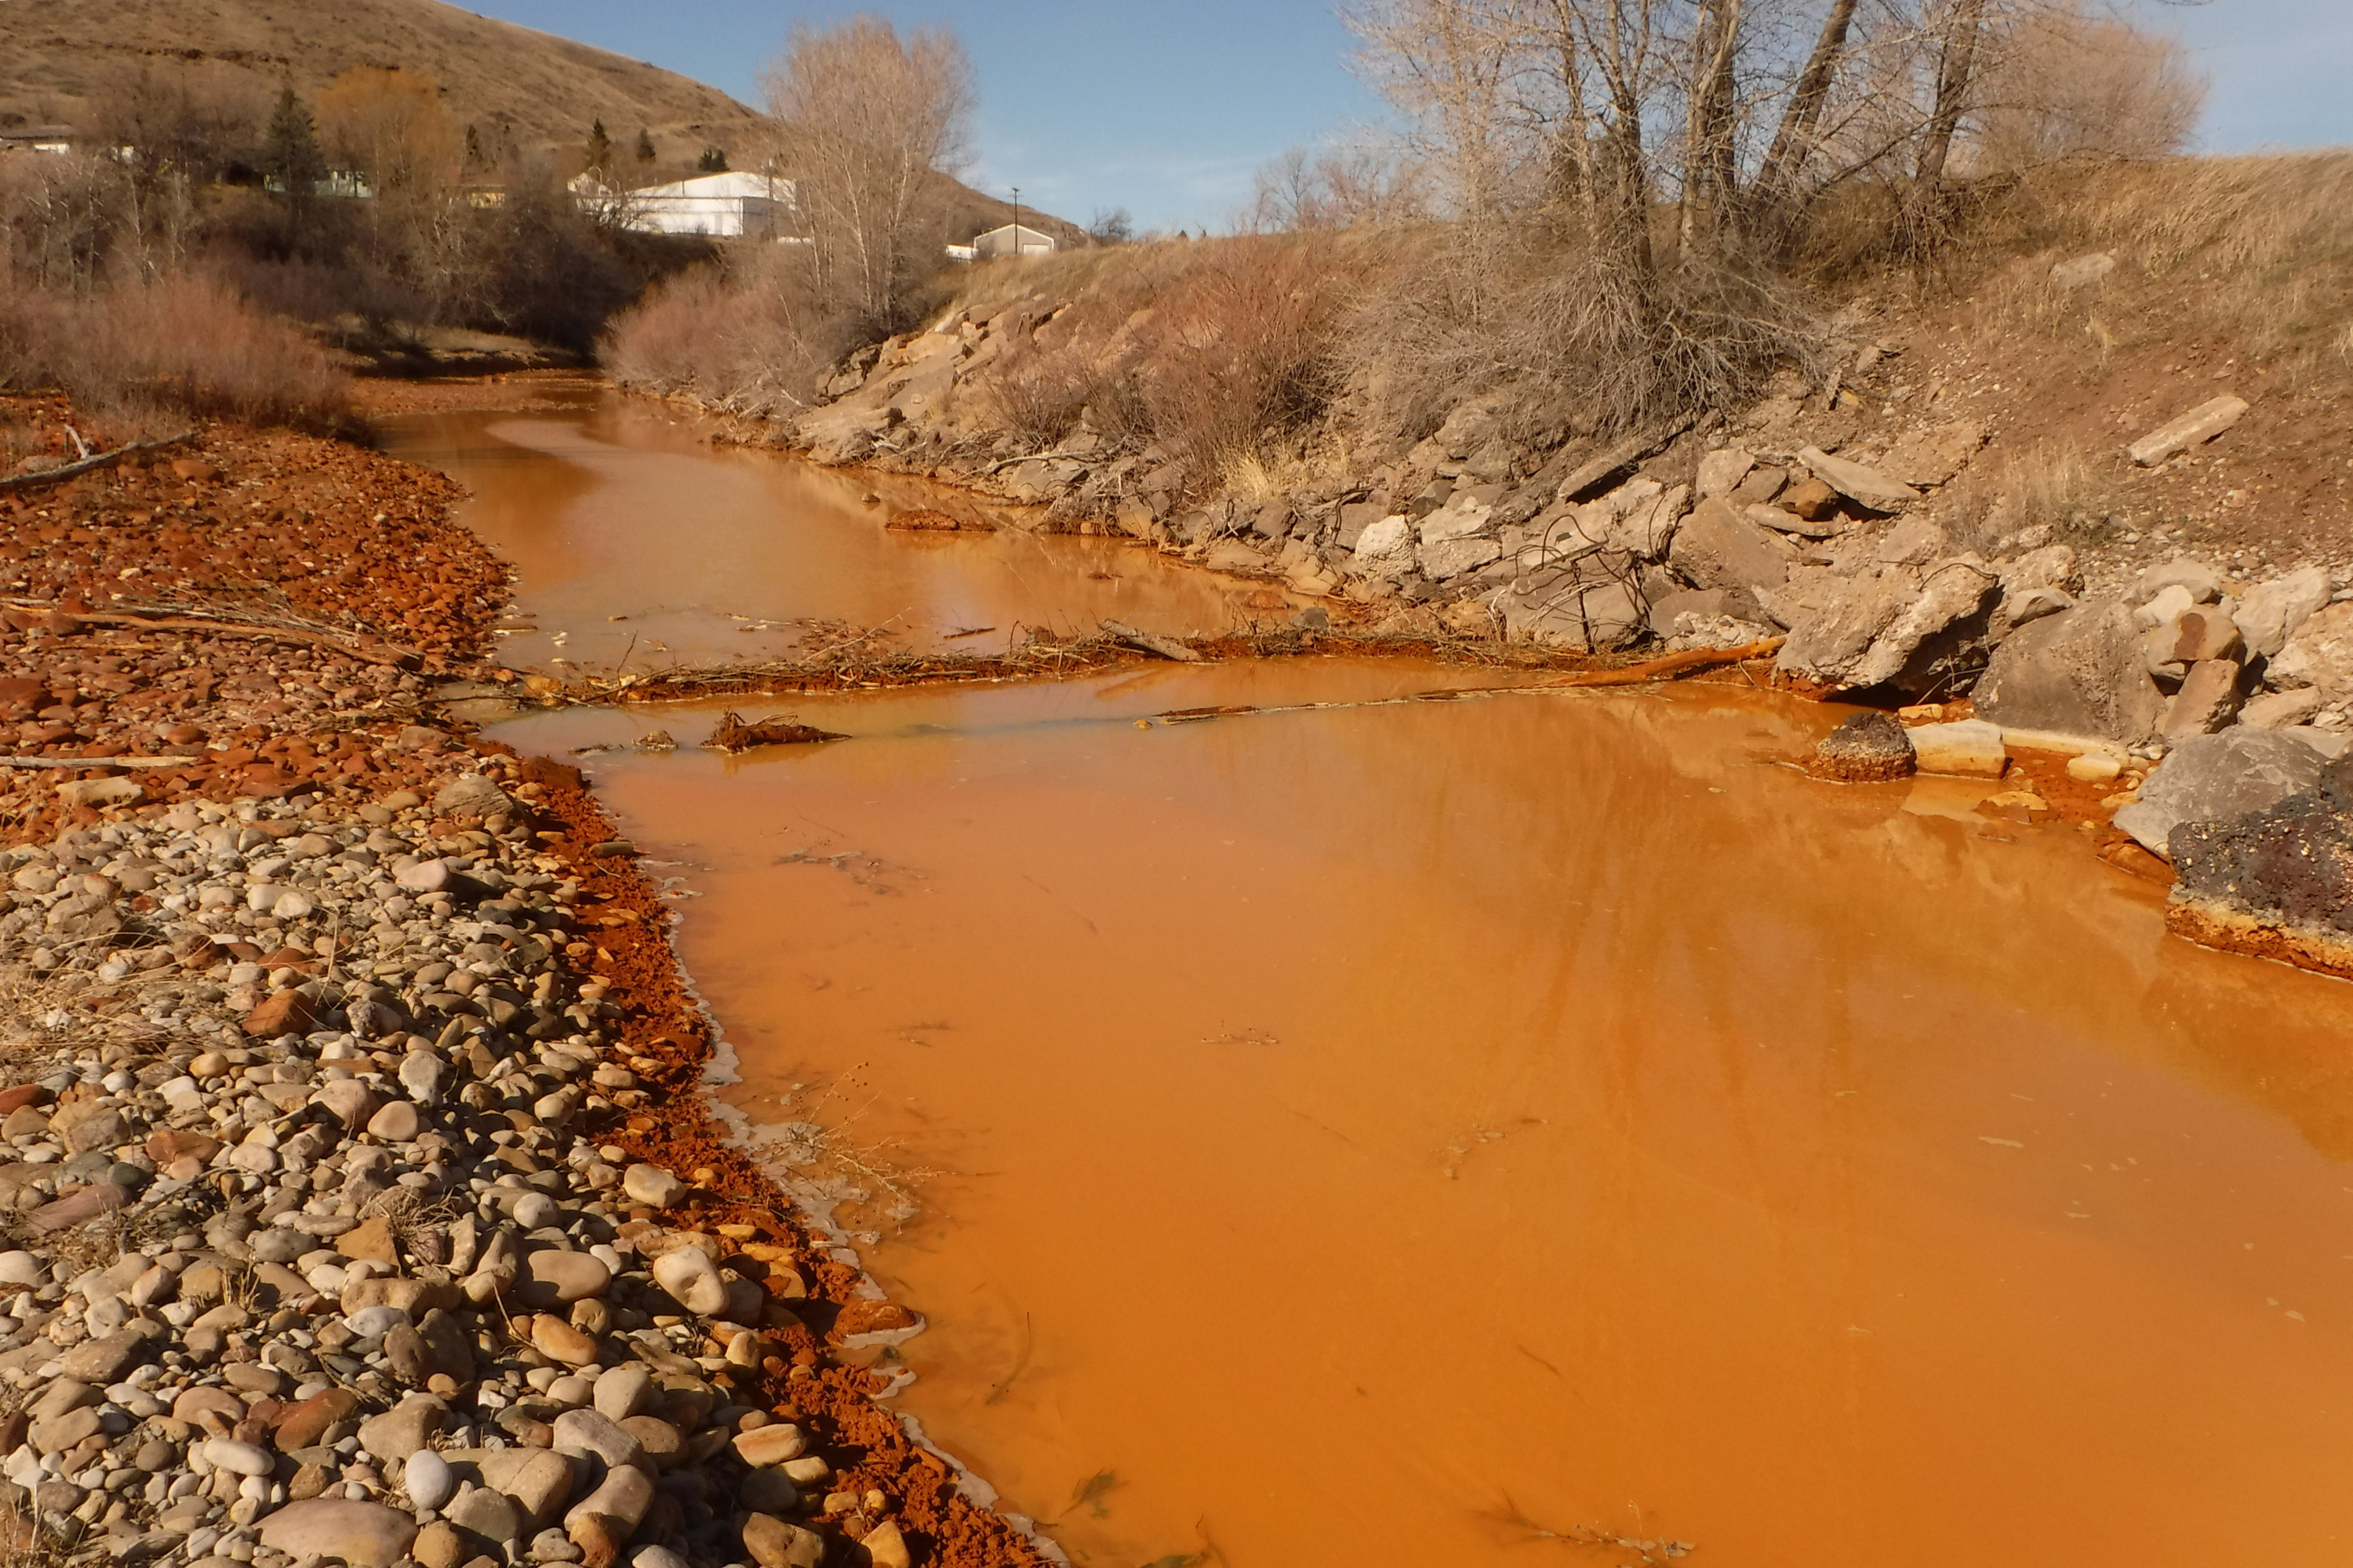 Polluted Belt Creek in Montana. The state plans to build a plant to treat acid mine drainage from an old coal mine that's Belt Creek, sometimes causing it to turn a rusty color and harming the trout fishery.